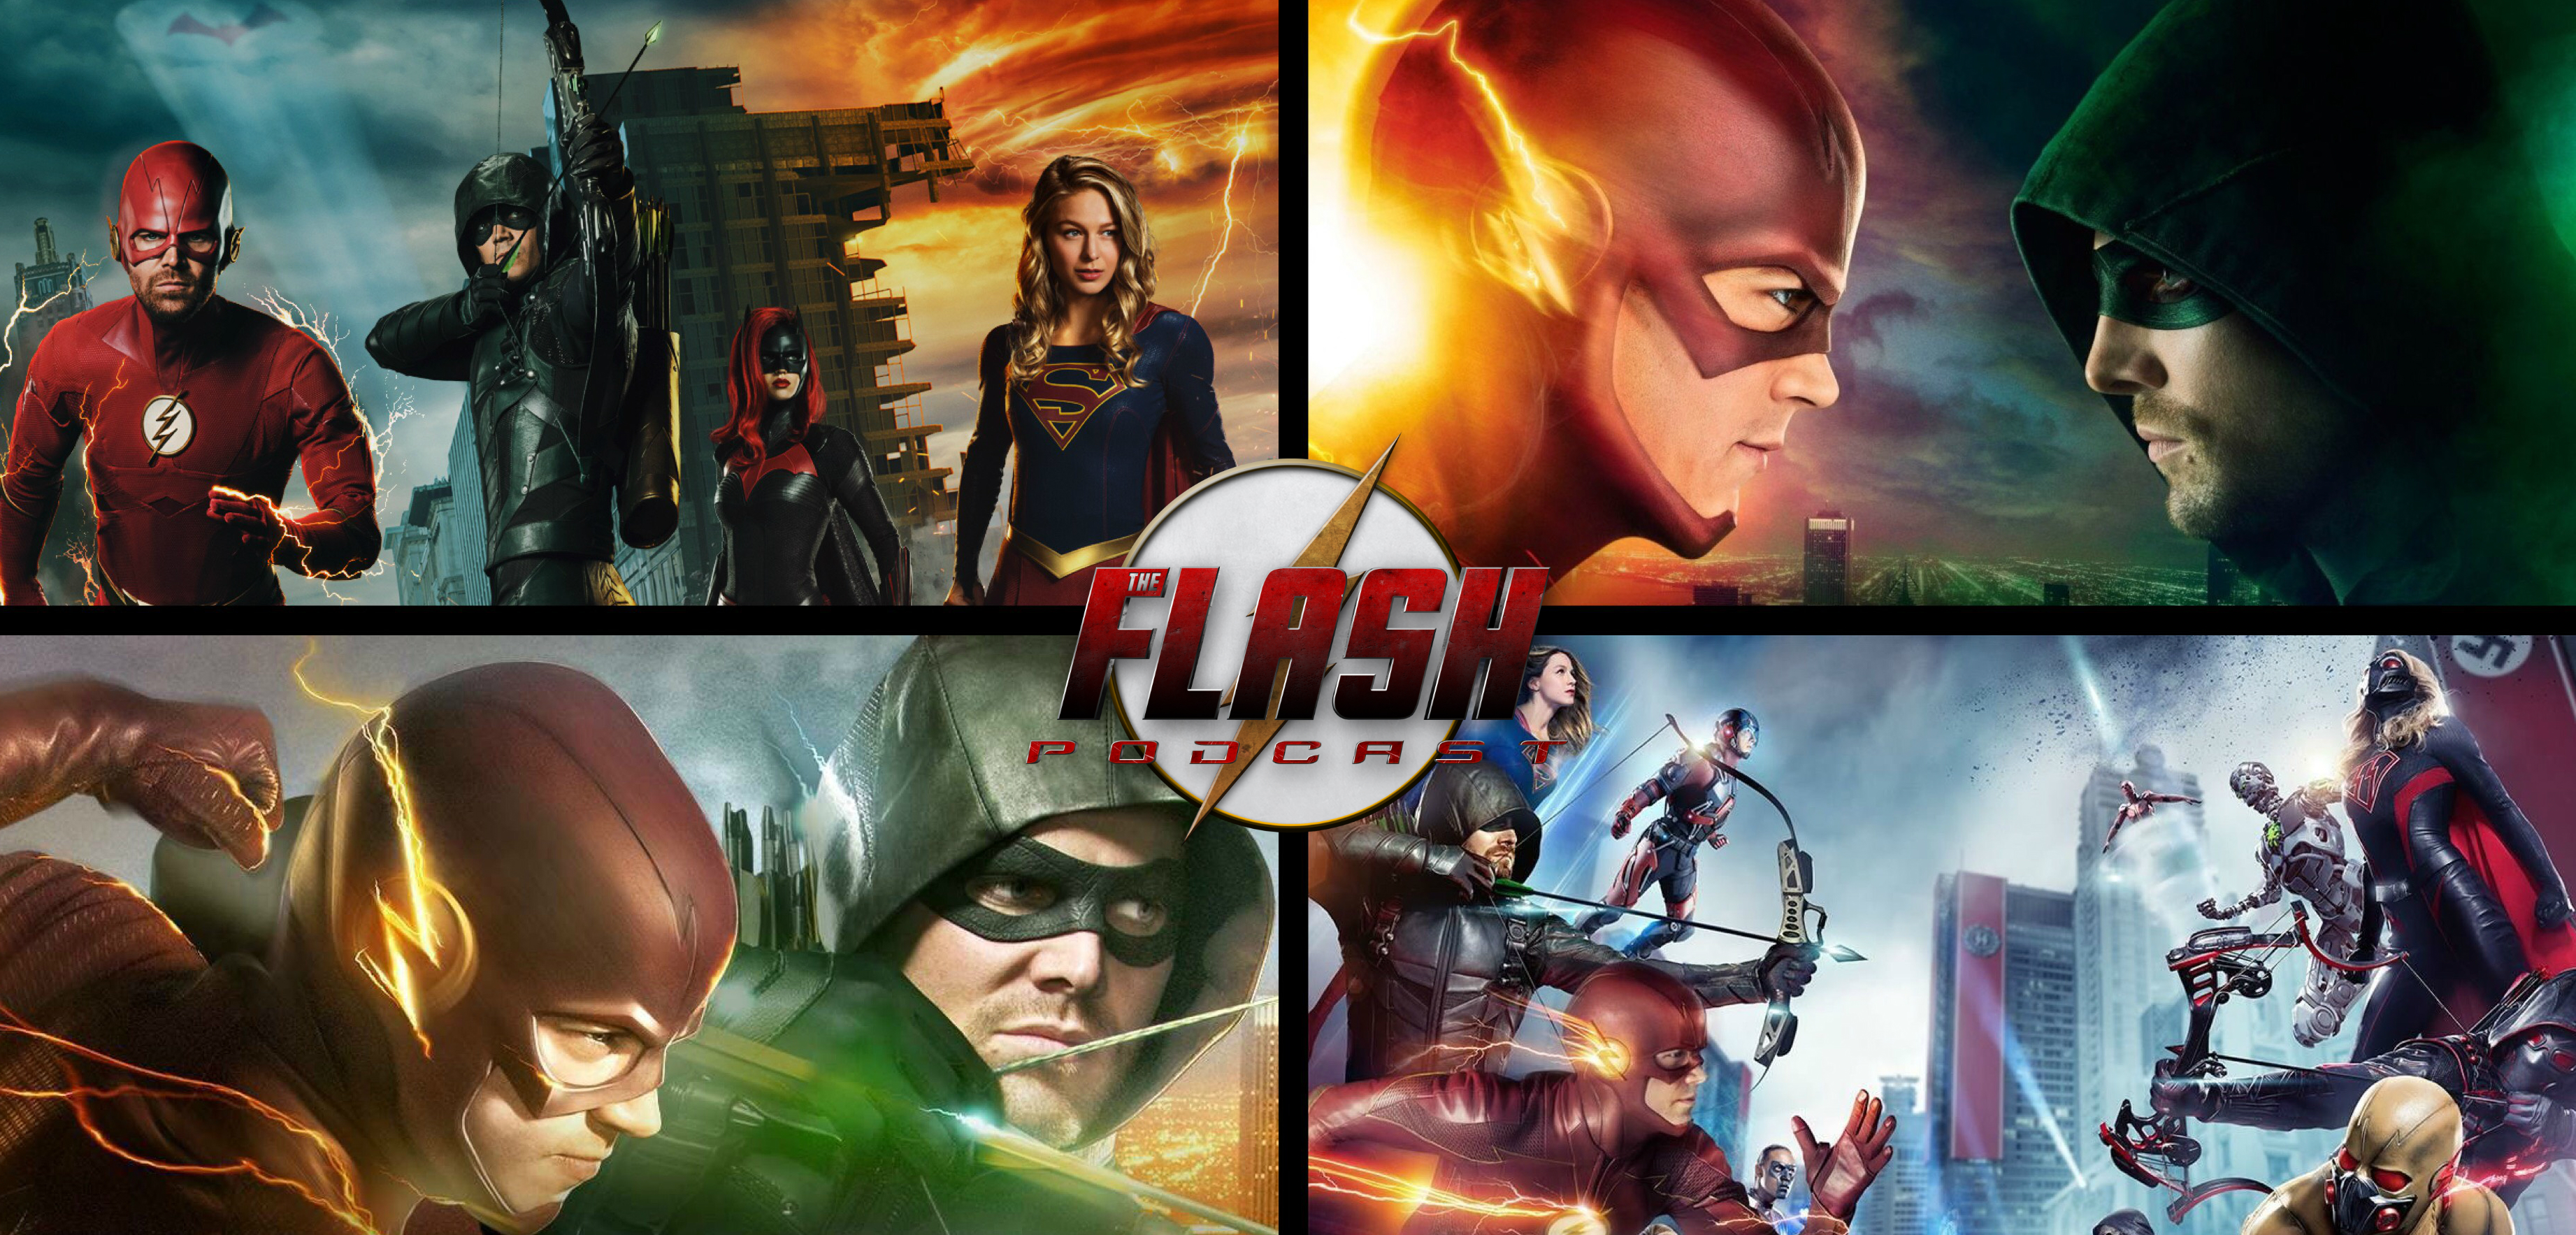 The Flash Podcast Season 5 5 - Episode 8: Arrowverse